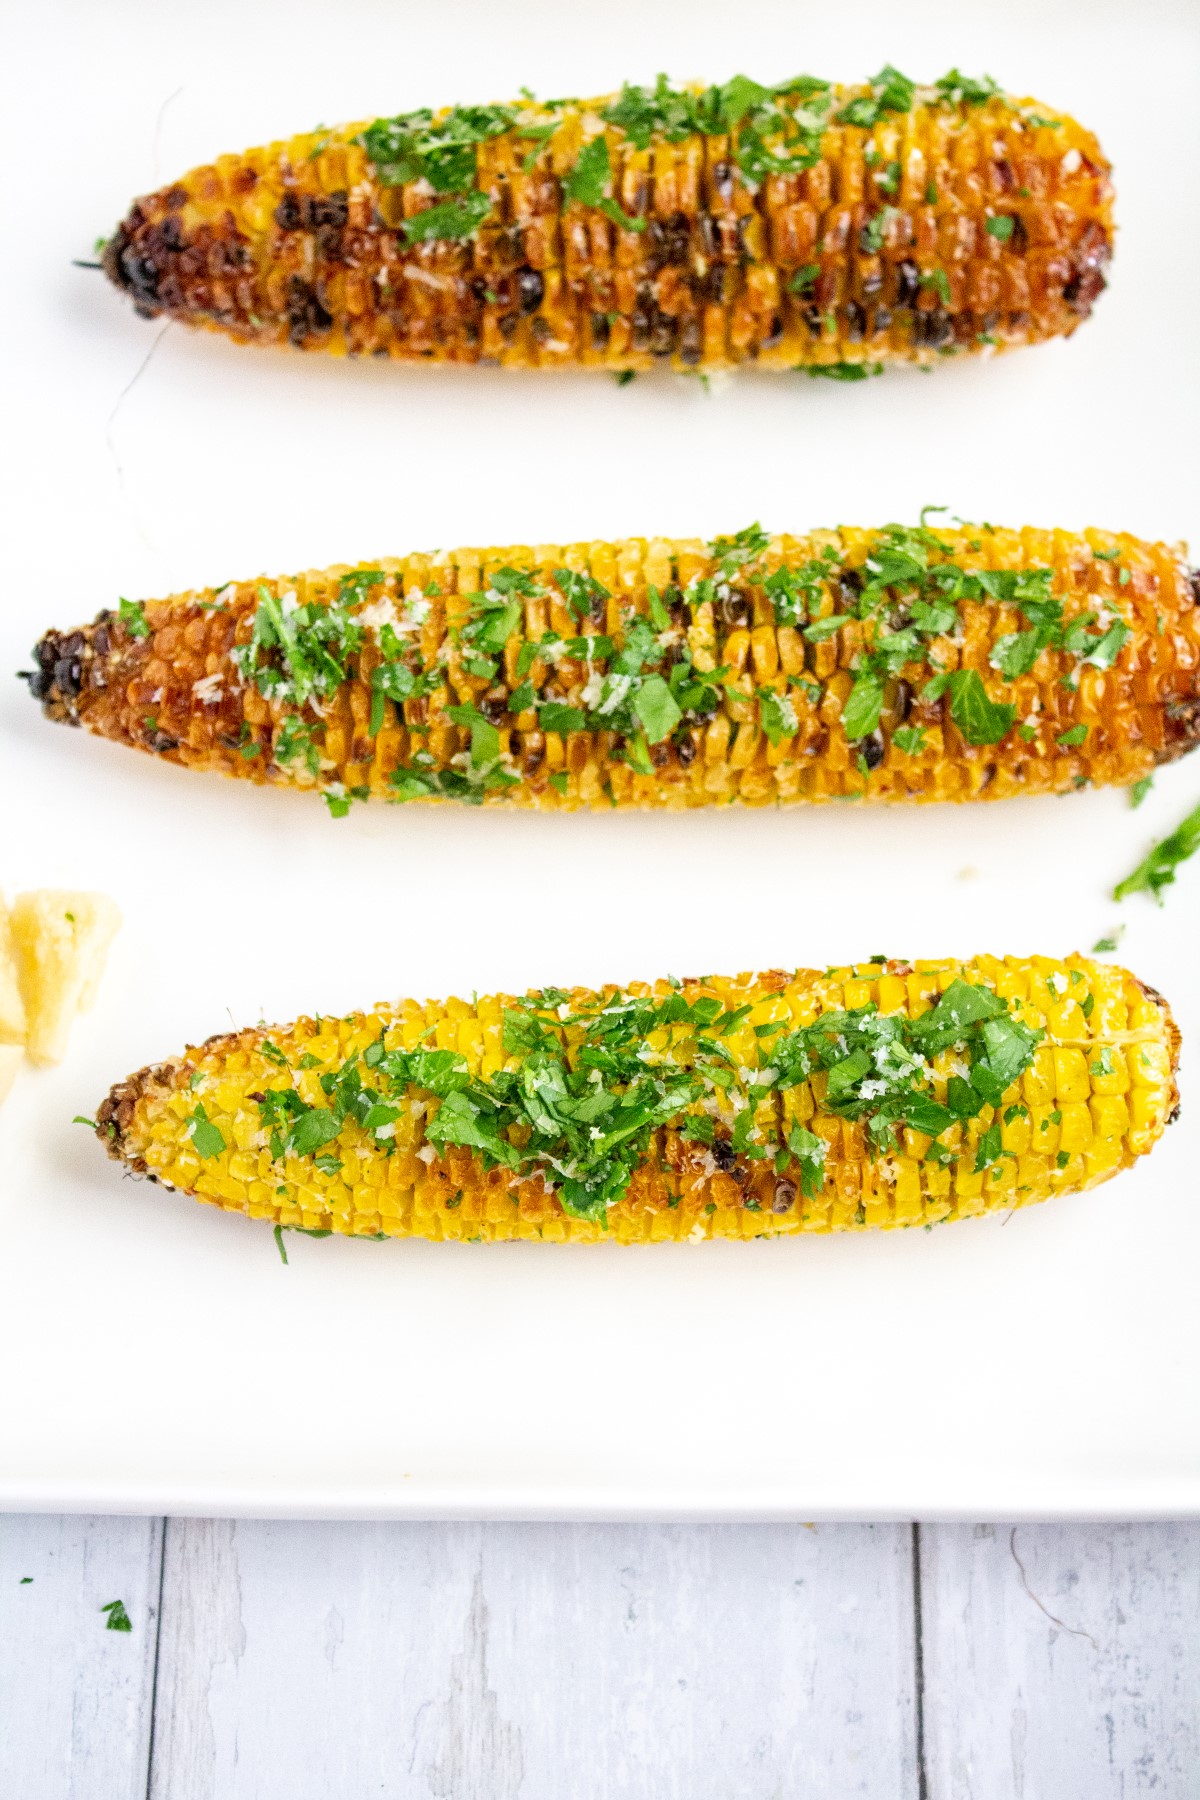 3 grilled cobs of corn covered with grated parmesan cheese, chopped parsley and minced garlic on a white plate.